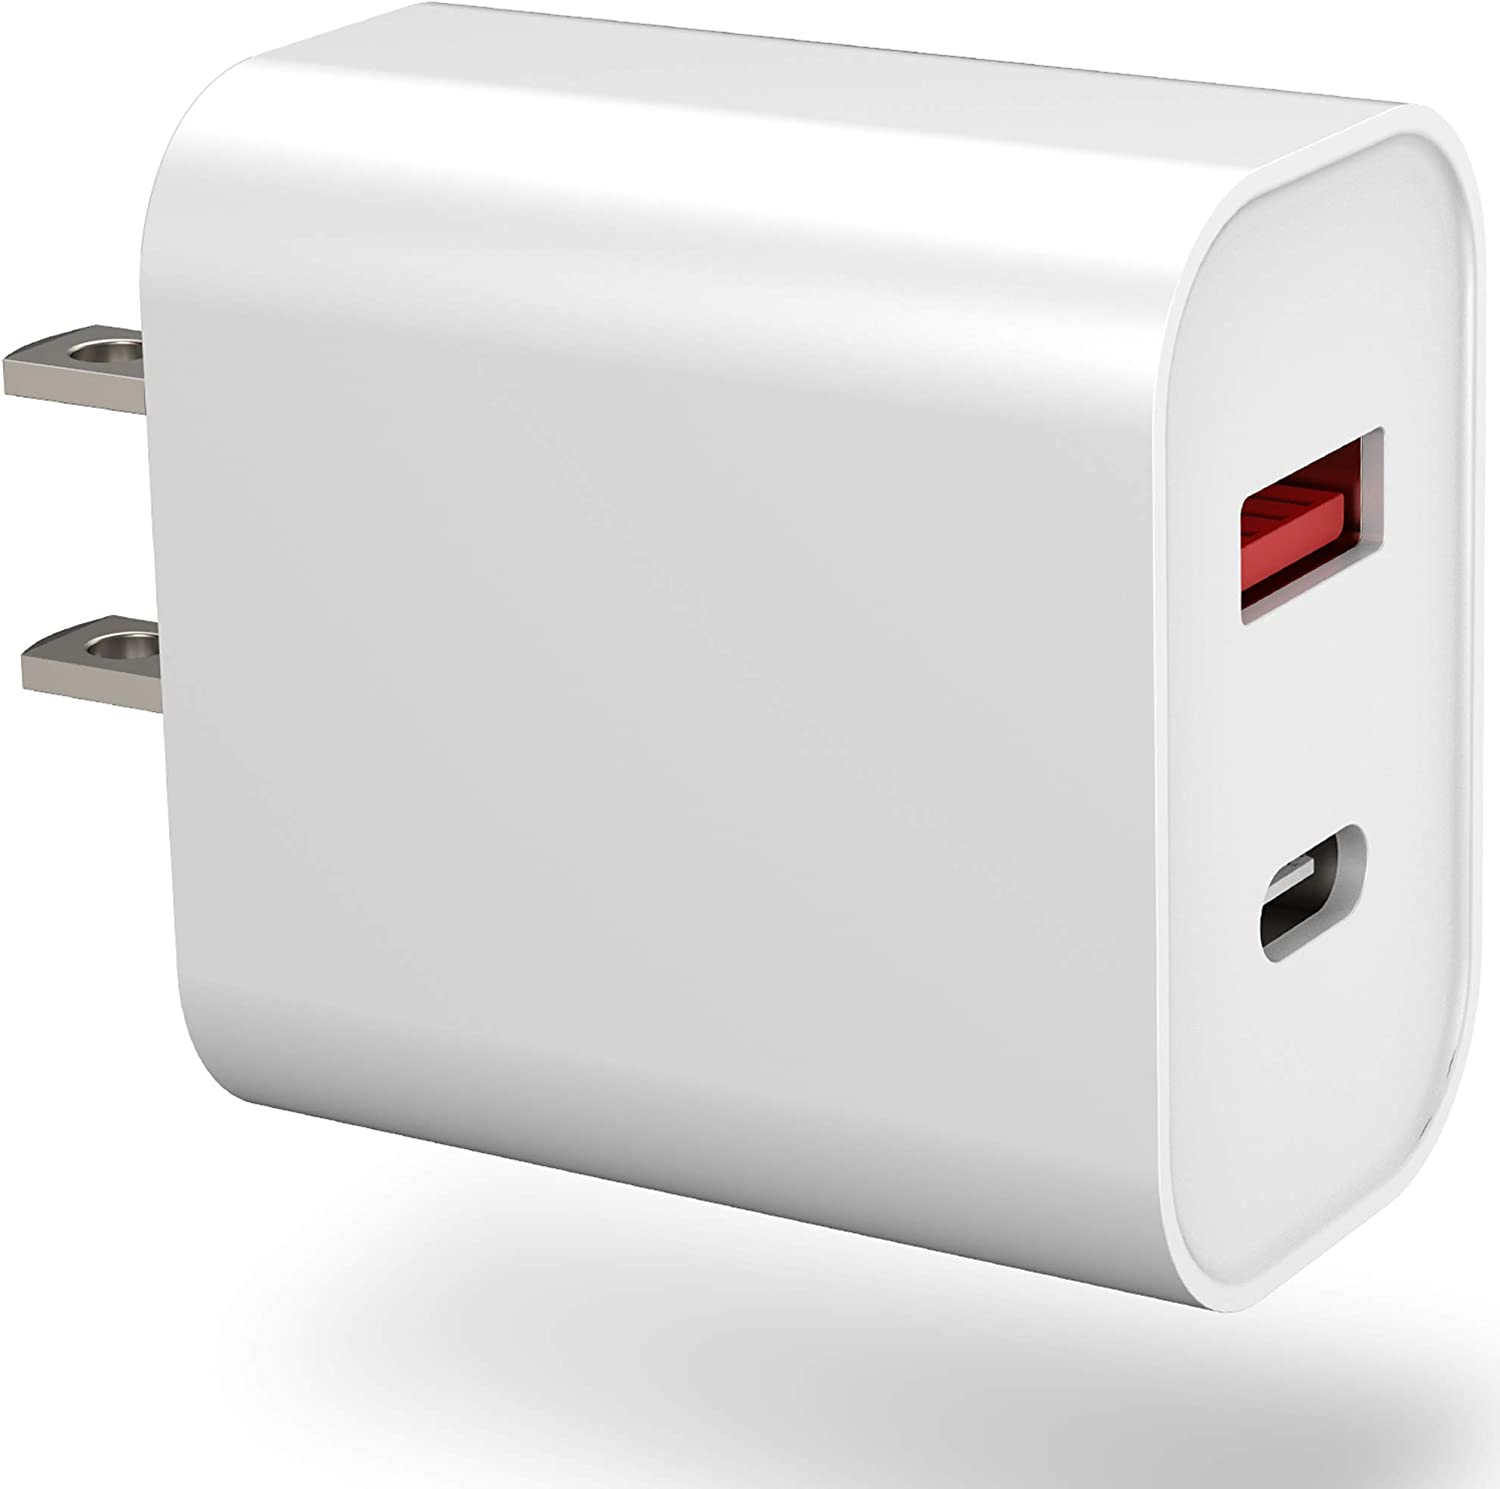 SUPERDANNY USB C Charger, 18W Power Delivery Power Adapter with QC 3.0, Dual Port Type C Wall Charger with Foldable Plug, PD Charger for iPad Pro, iPhone 11, AirPods, Google Pixel, Samsung Galaxy, LG